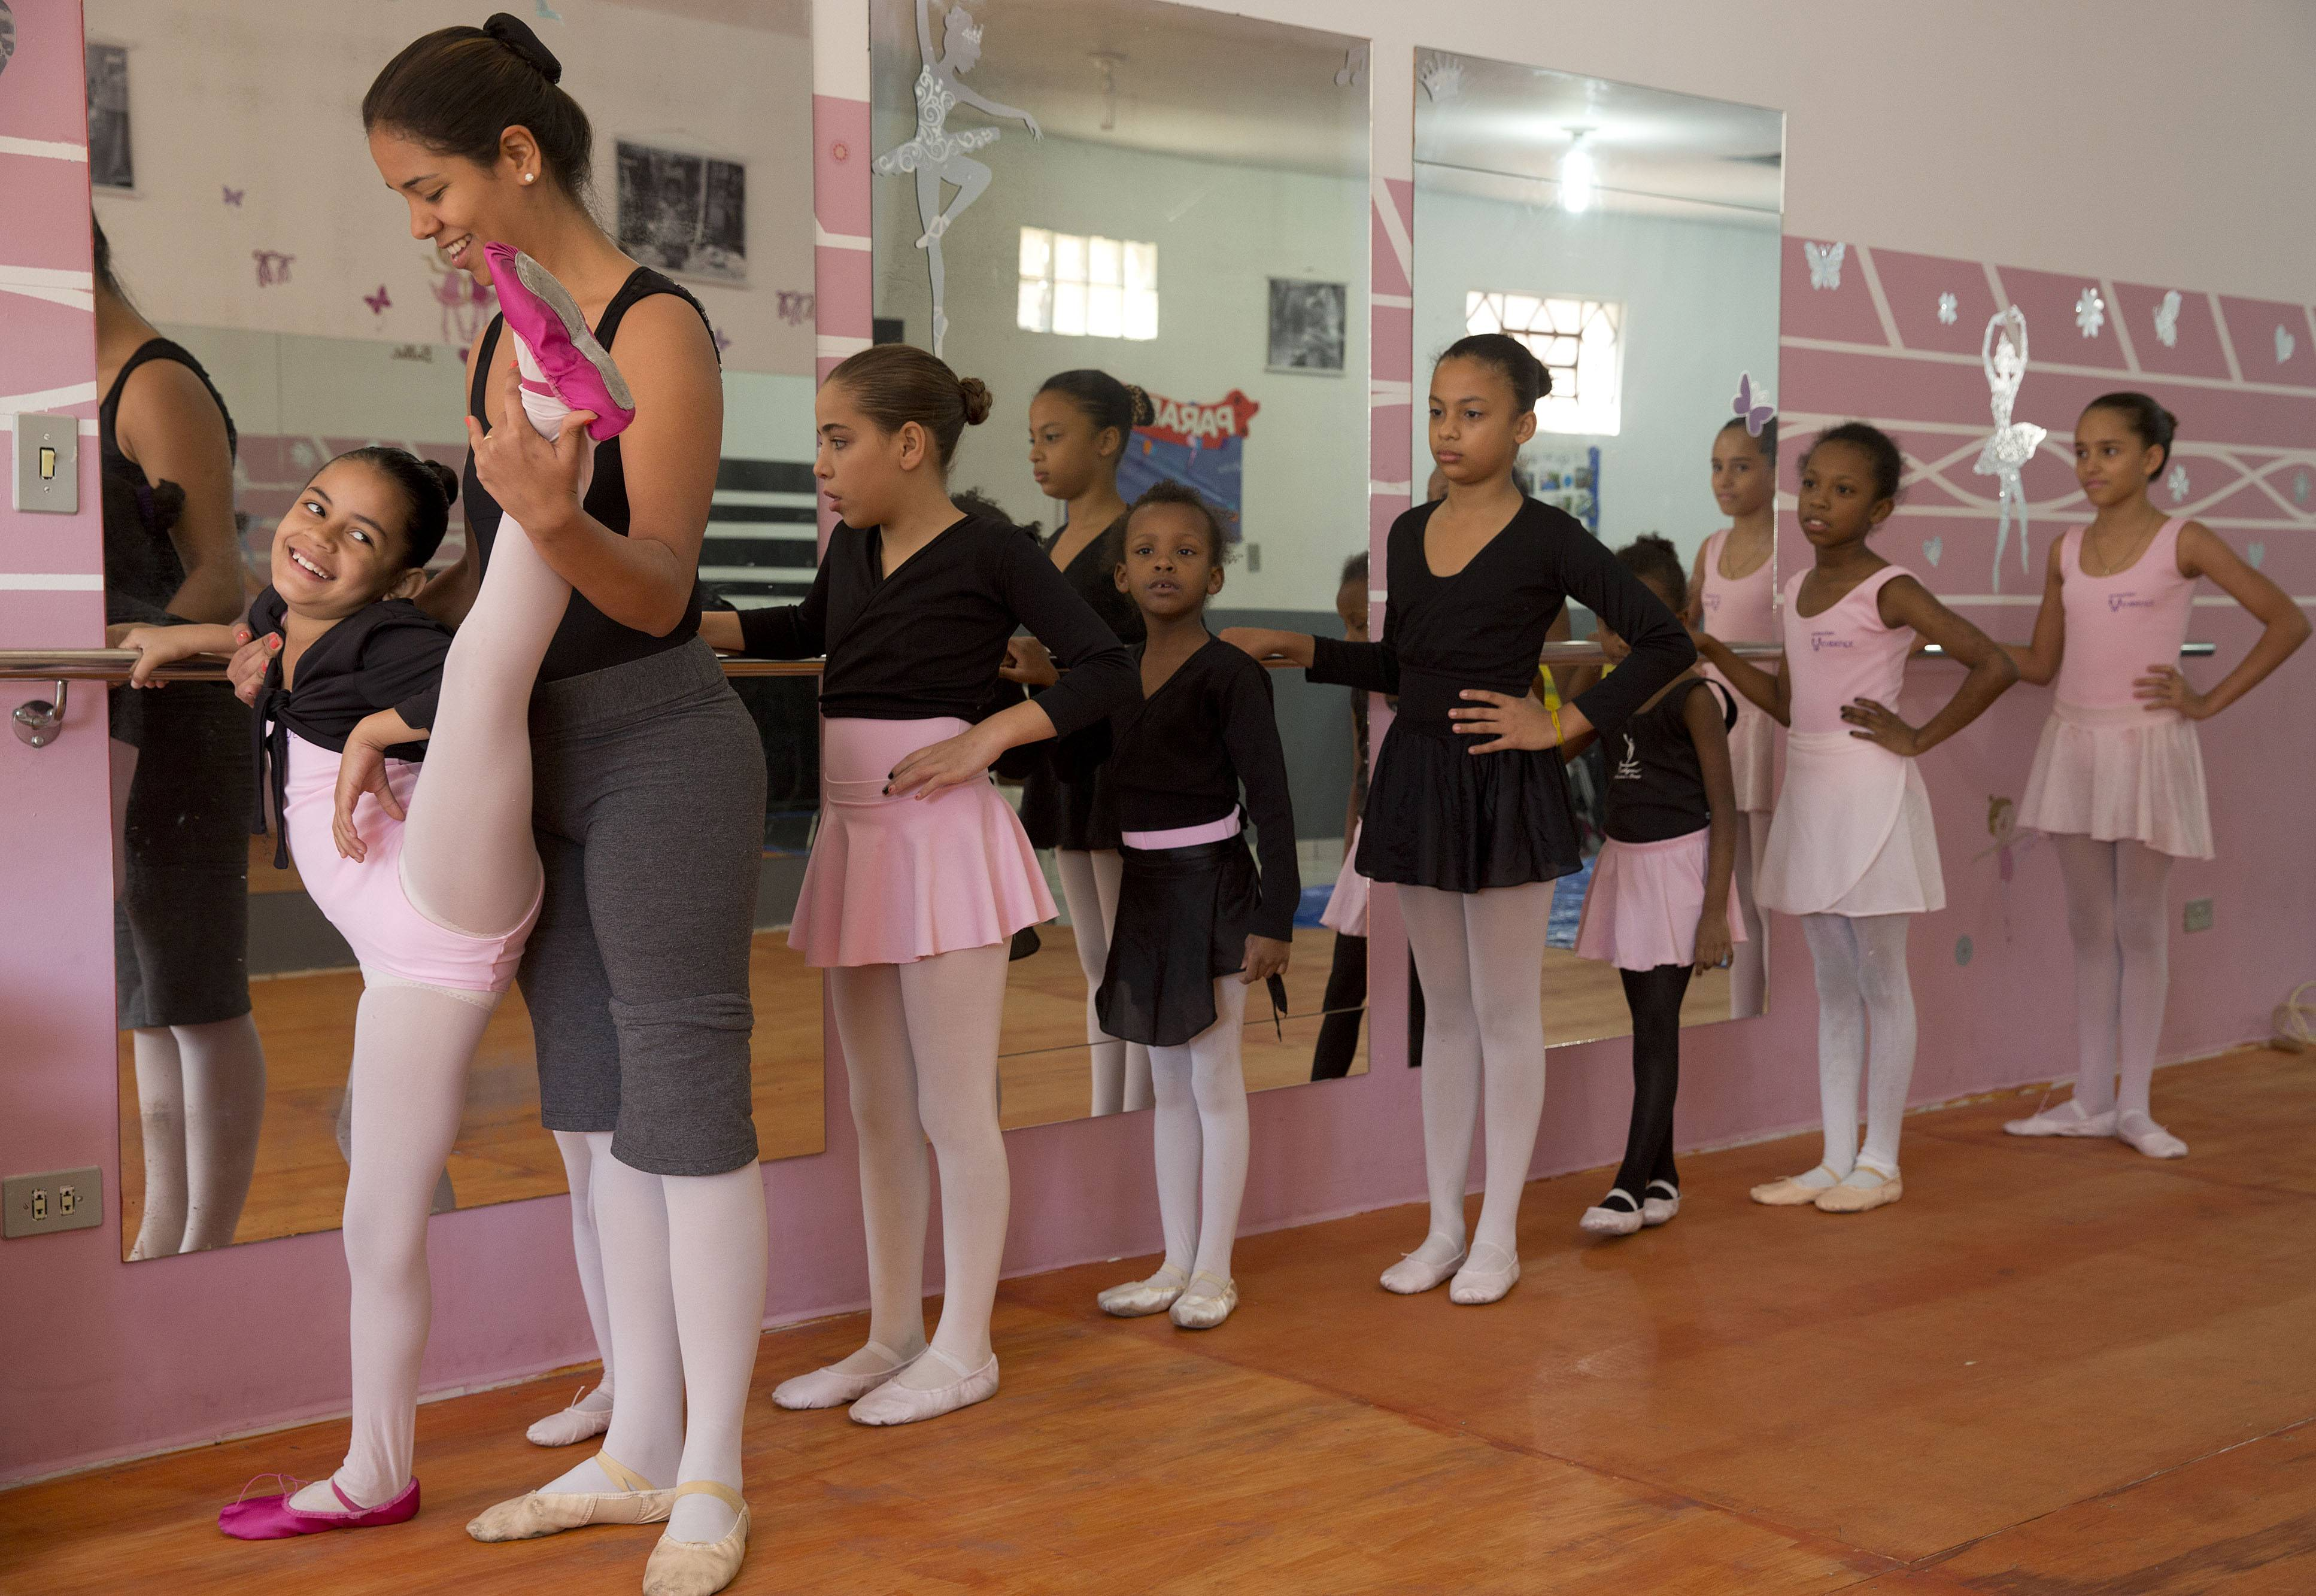 "Ballet instructor Joana Machado instructs young girls at her House of Dreams dance studio in Crackland, one of the roughest neighborhoods of downtown Sao Paulo, Brazil. ""We see all kinds of stories here. From girls who haven't showered in days, who don't know how to brush their teeth, who are locked inside their homes all day,"" said Machado. ""I feel always responsible for their lives, always worried about what may happen."""